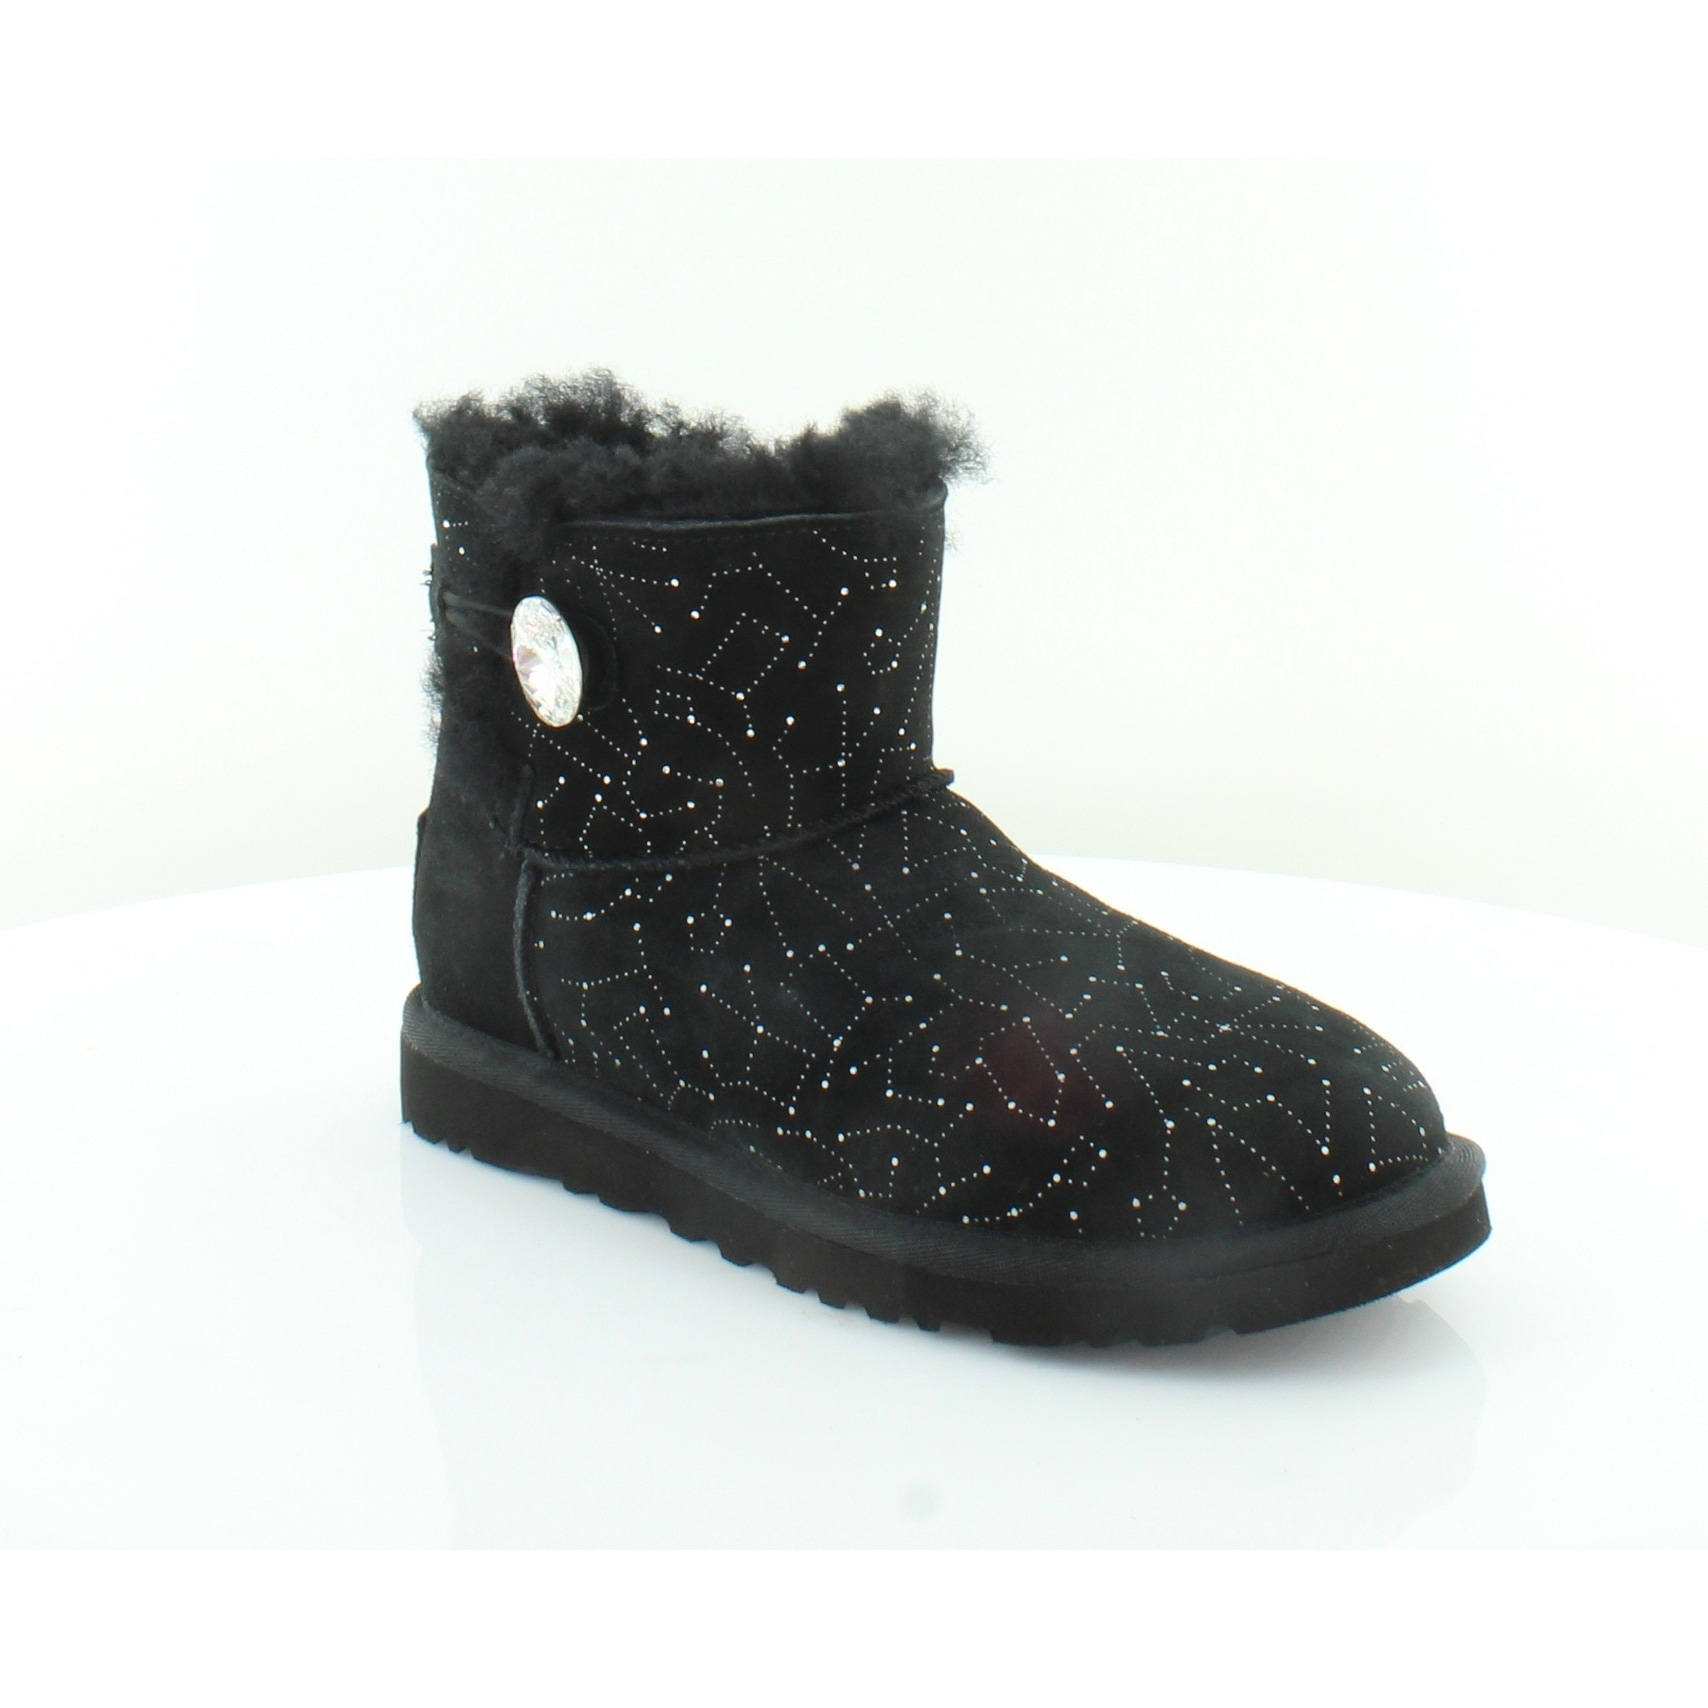 3a347c54c24 ireland ugg mini bailey button bling constellation boot xp c29bc bd77f